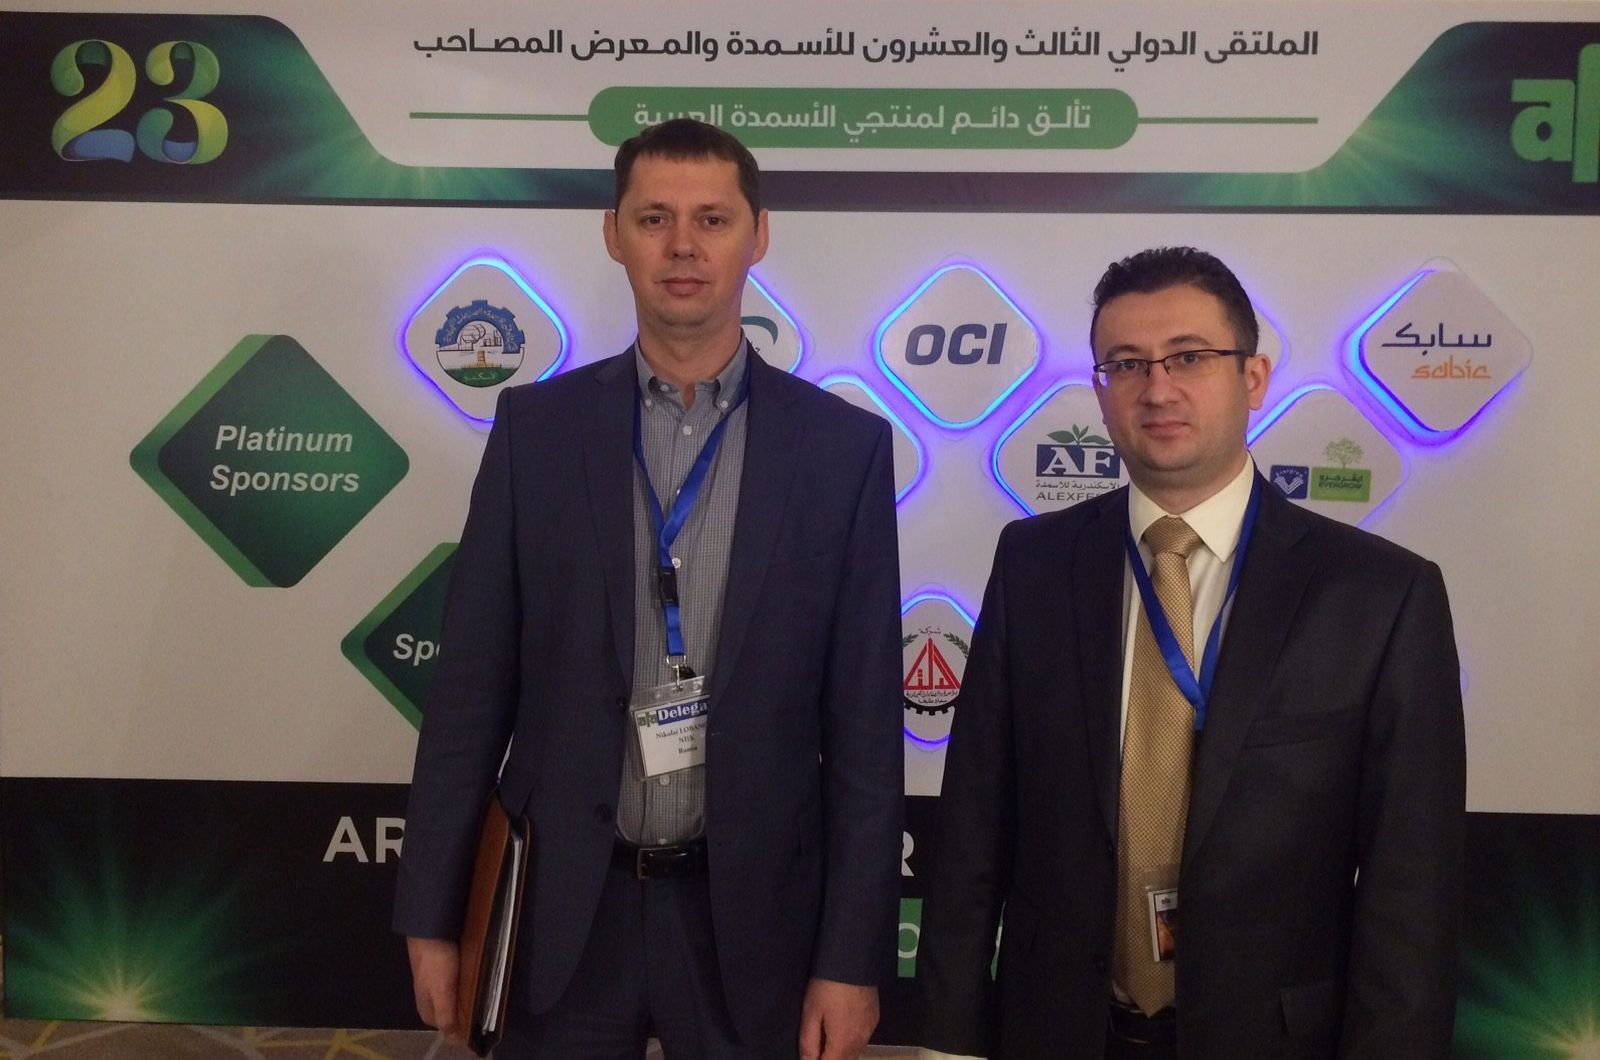 NIIK delegation attended a regular 23rd AFA Annual Fertilizer Forum